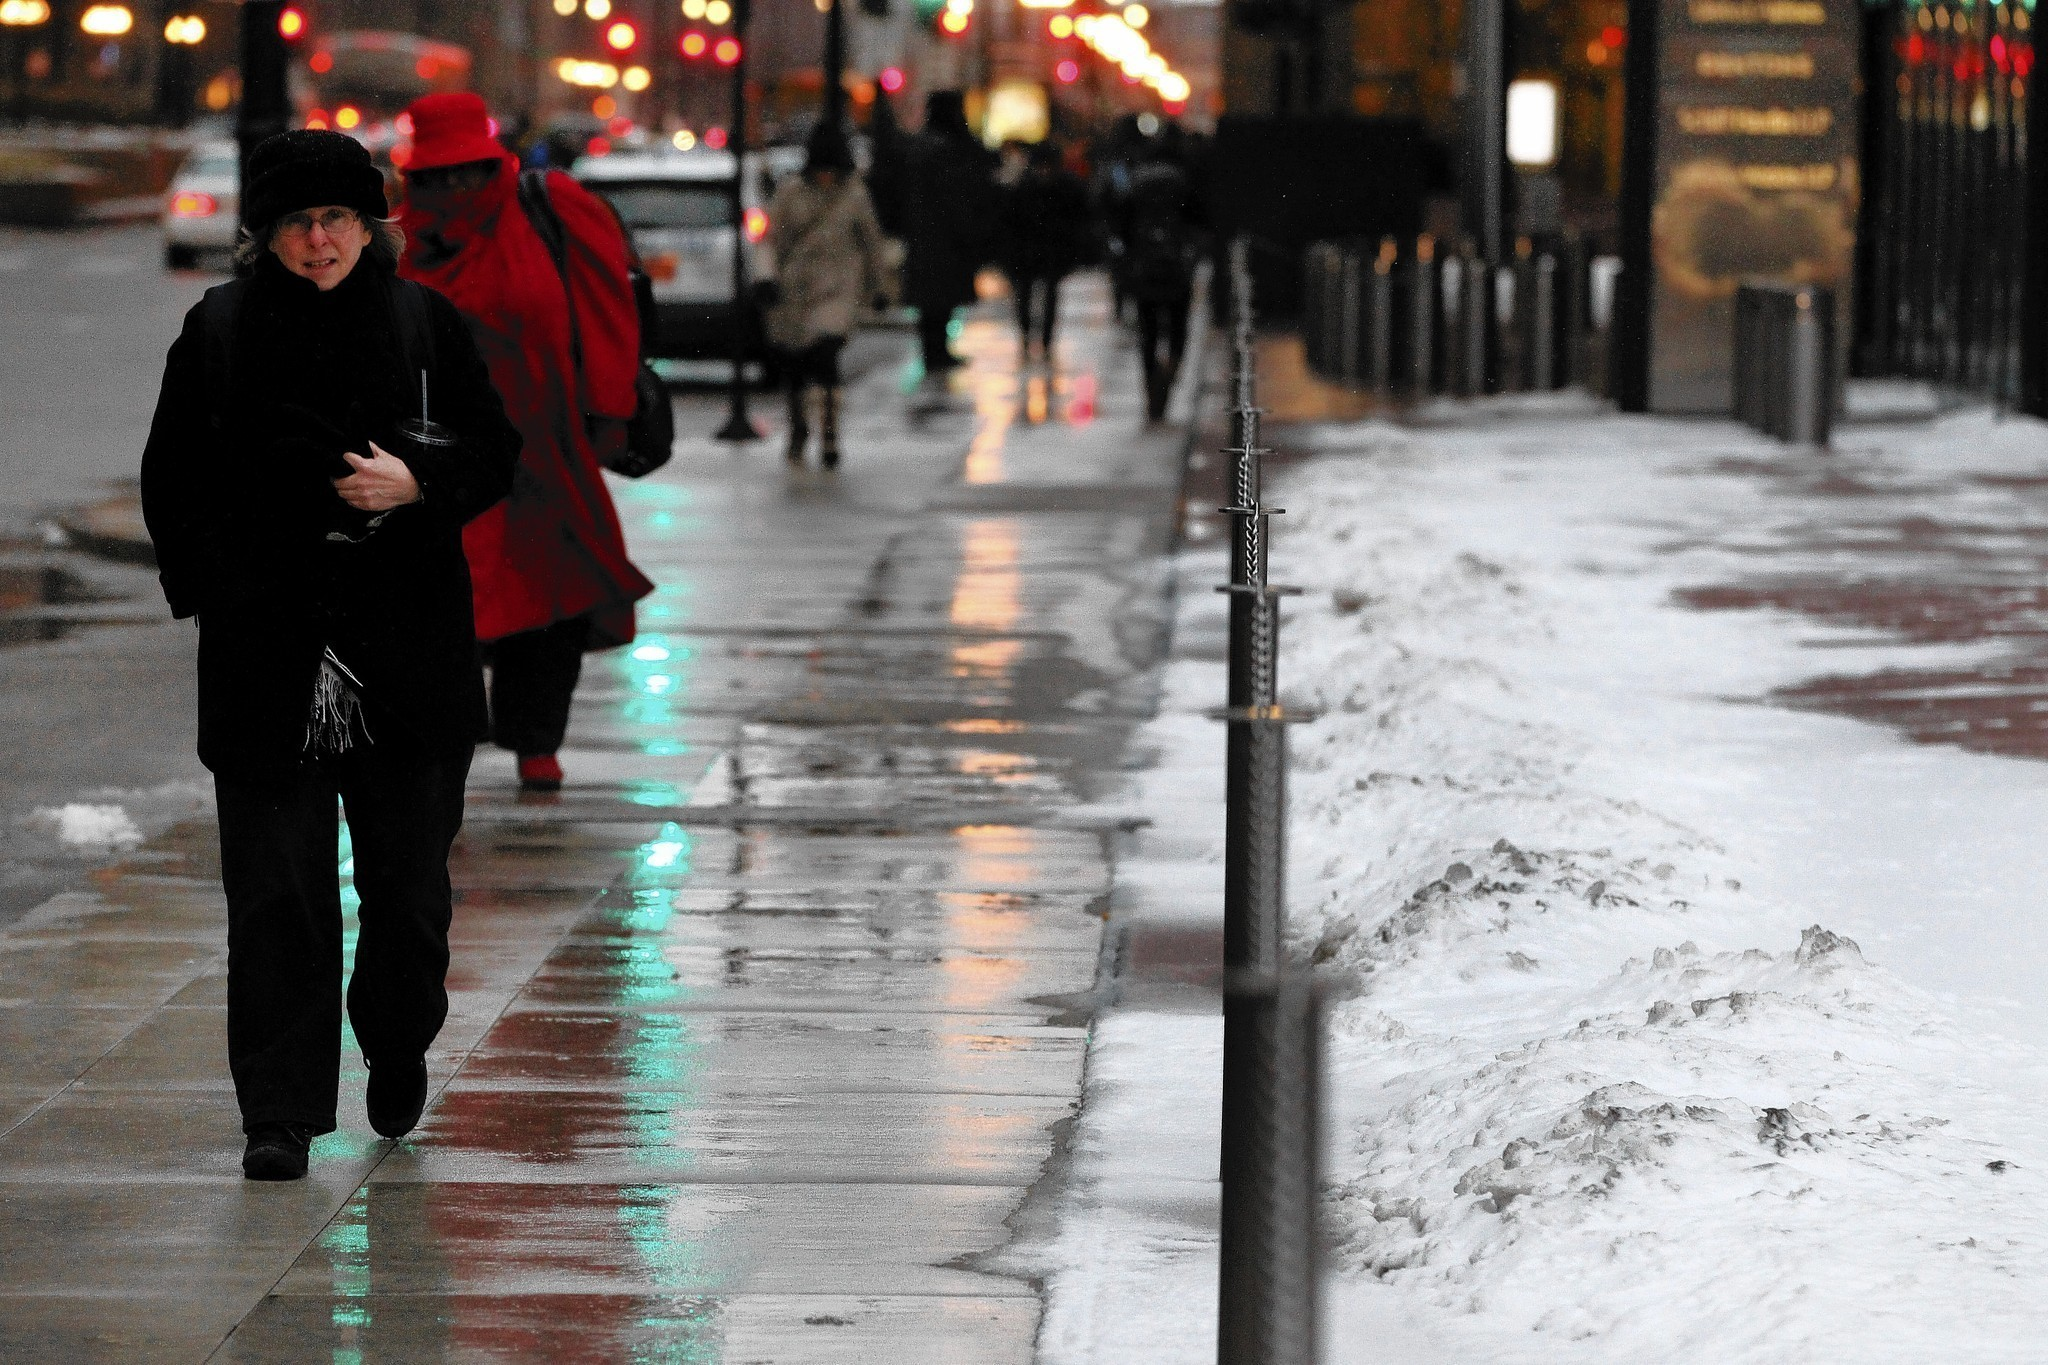 Heated Sidewalks A Welcome Amenity In Brutal Winter